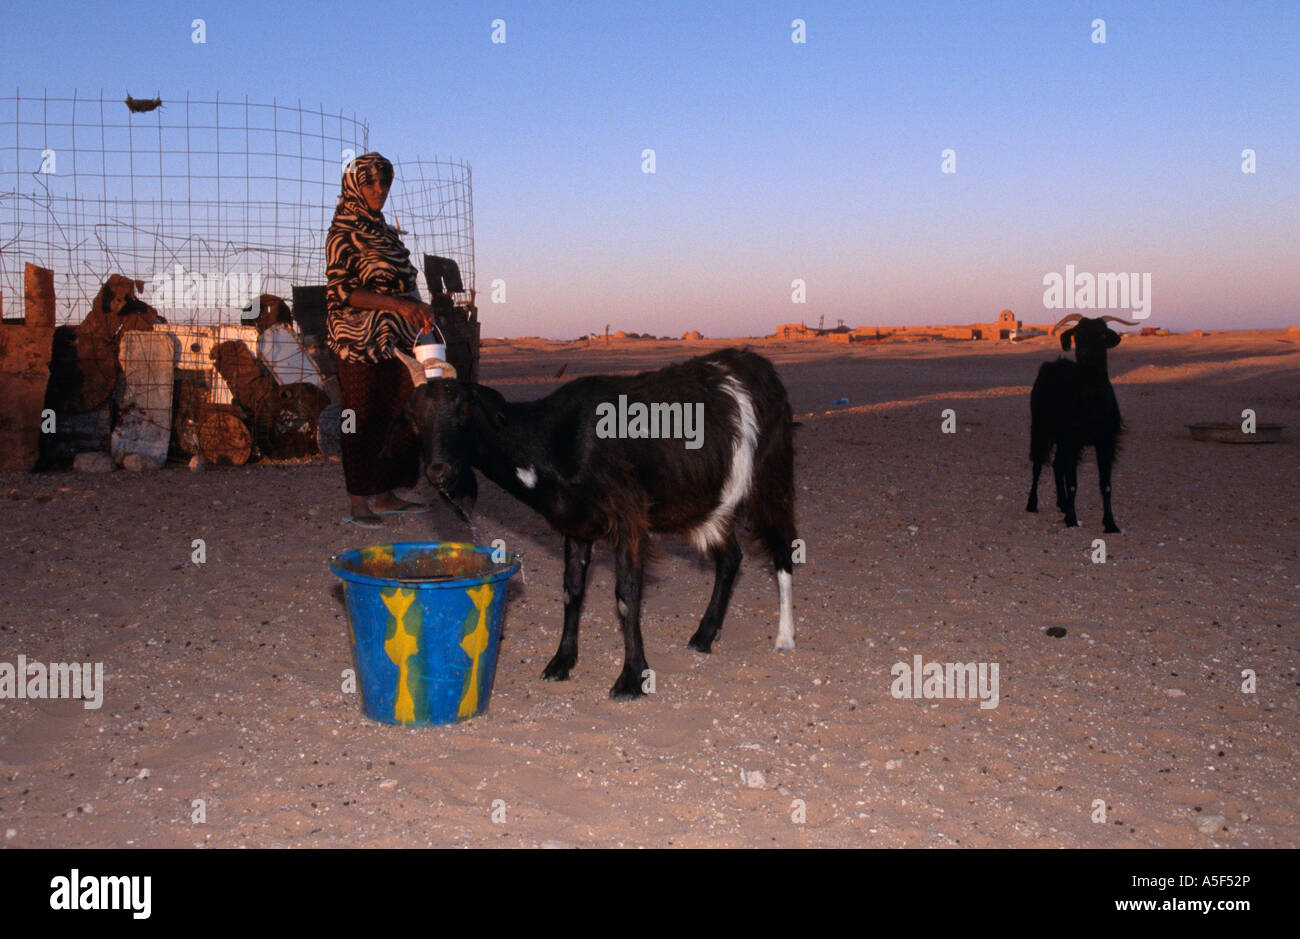 Goat farming in the Saharawi refugee camp in Tindouf Western Algeria - Stock Image